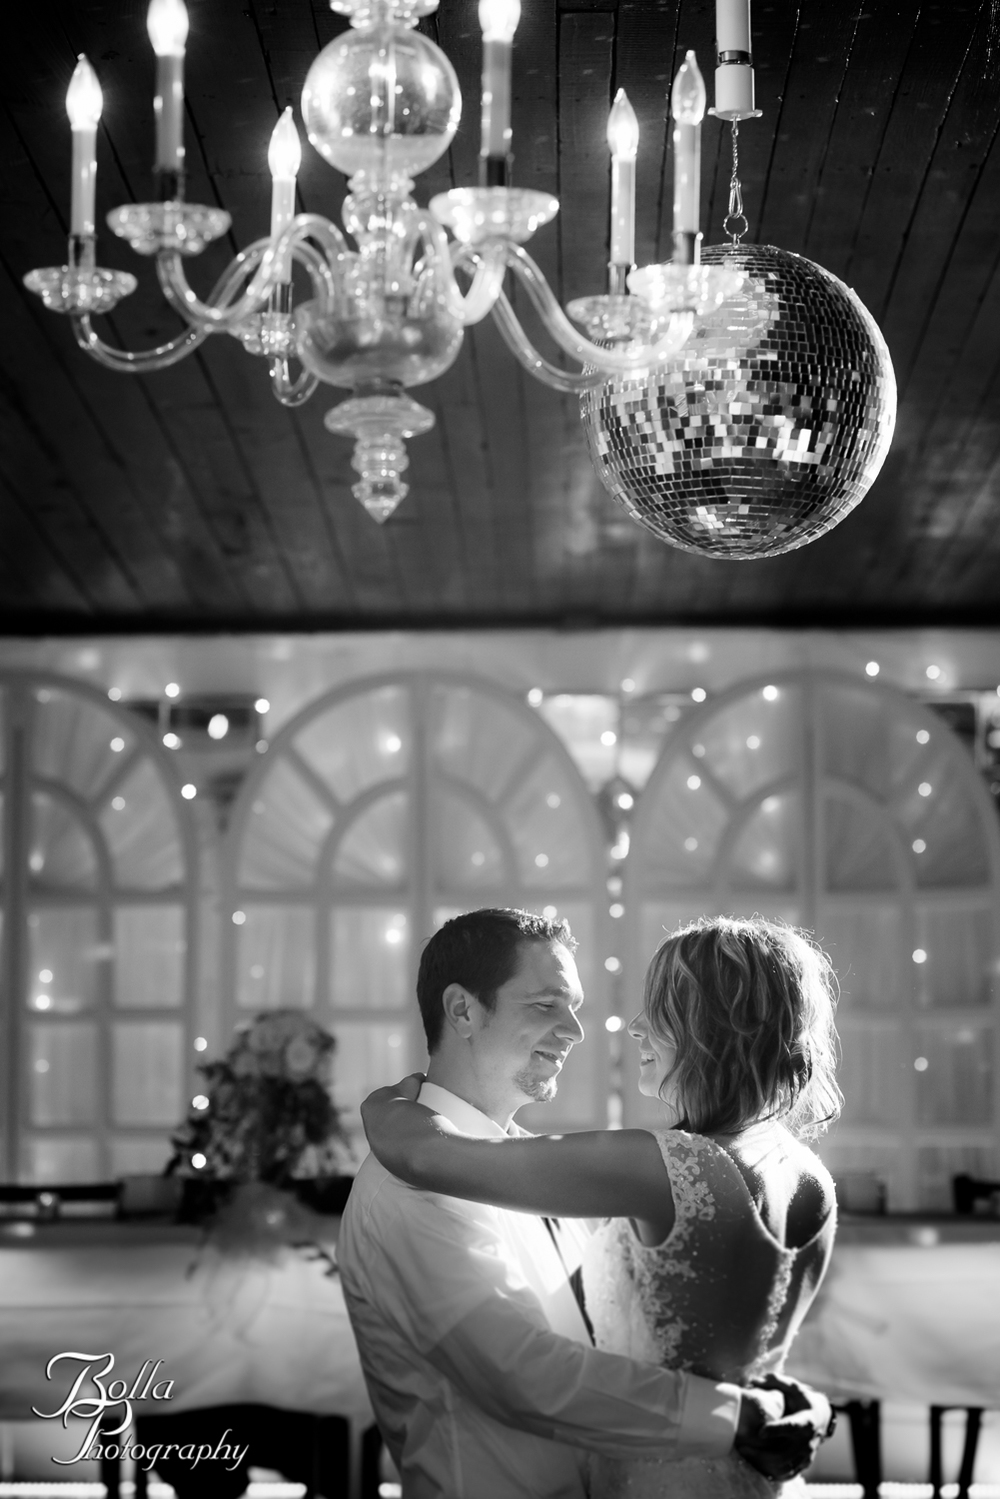 Bolla_Photography_St_Louis_wedding_photographer-0512.jpg